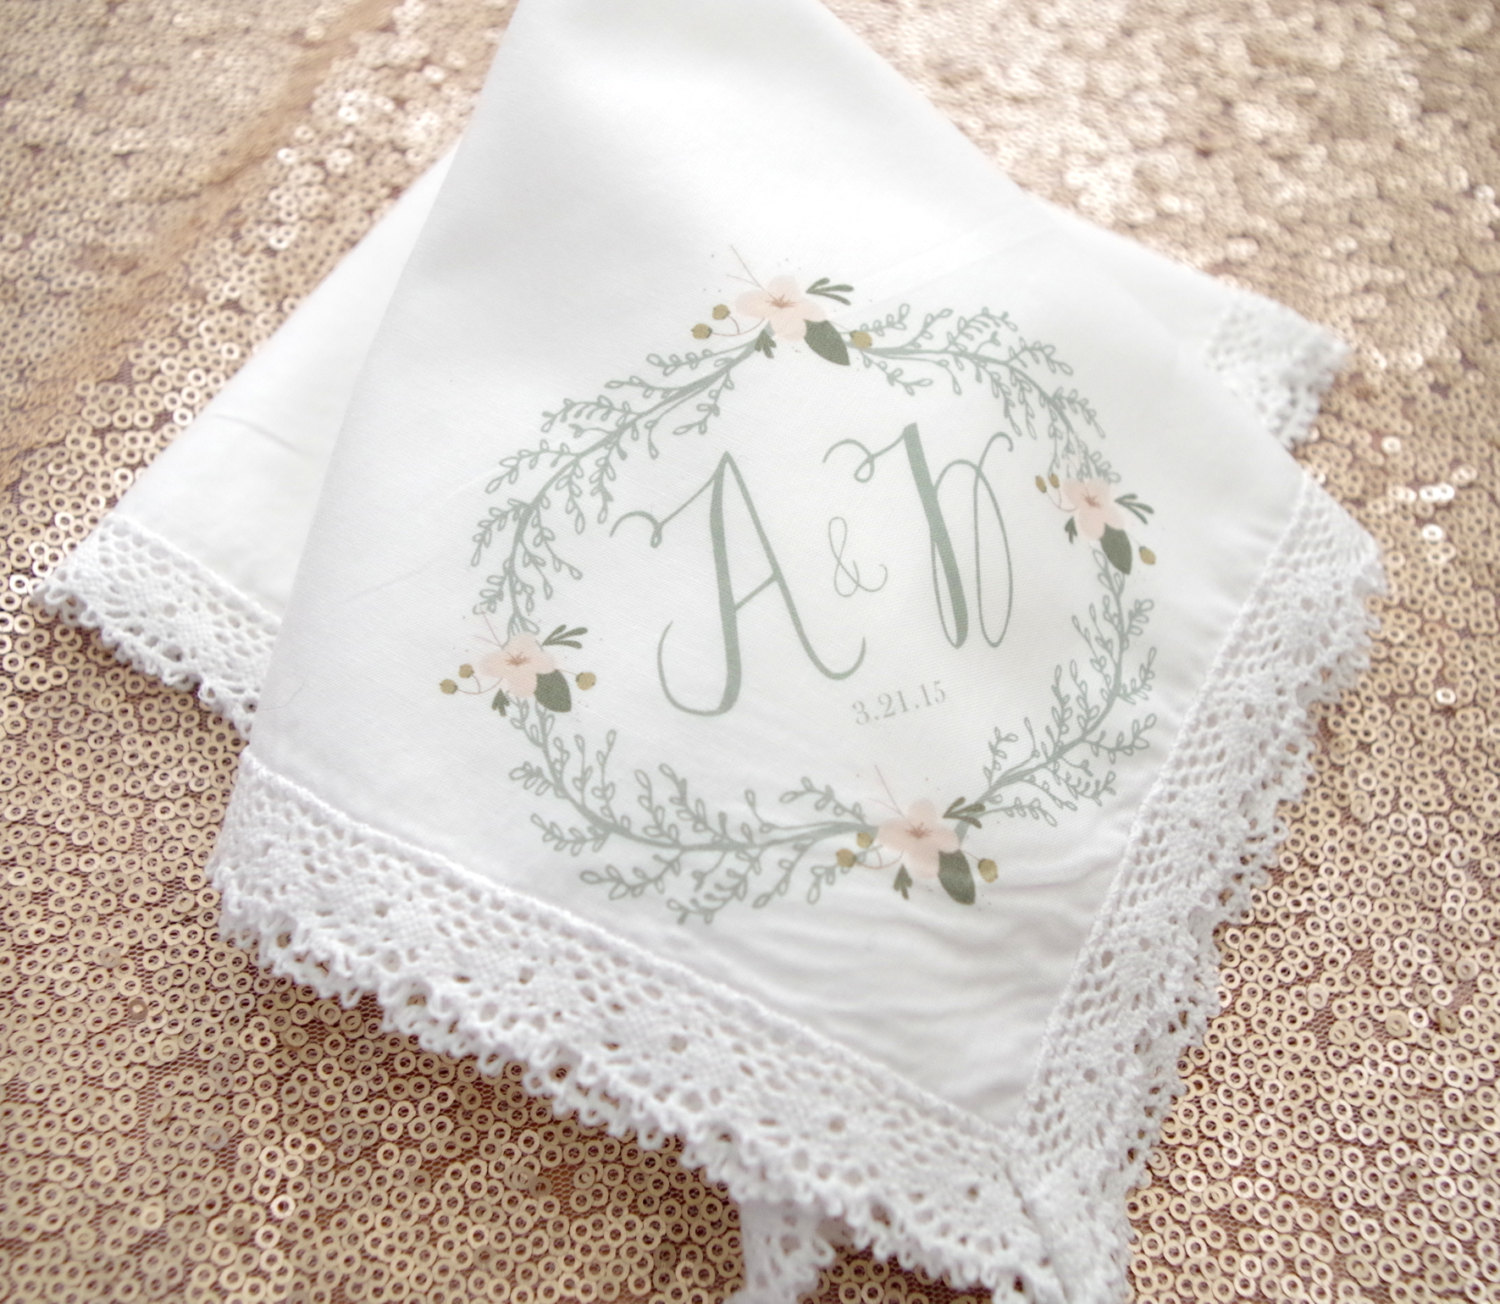 gorgeous floral monogram handkerchief | personalized wedding handkerchiefs and wedding hankies | http://emmalinebride.com/gifts/personalized-wedding-handkerchiefs/